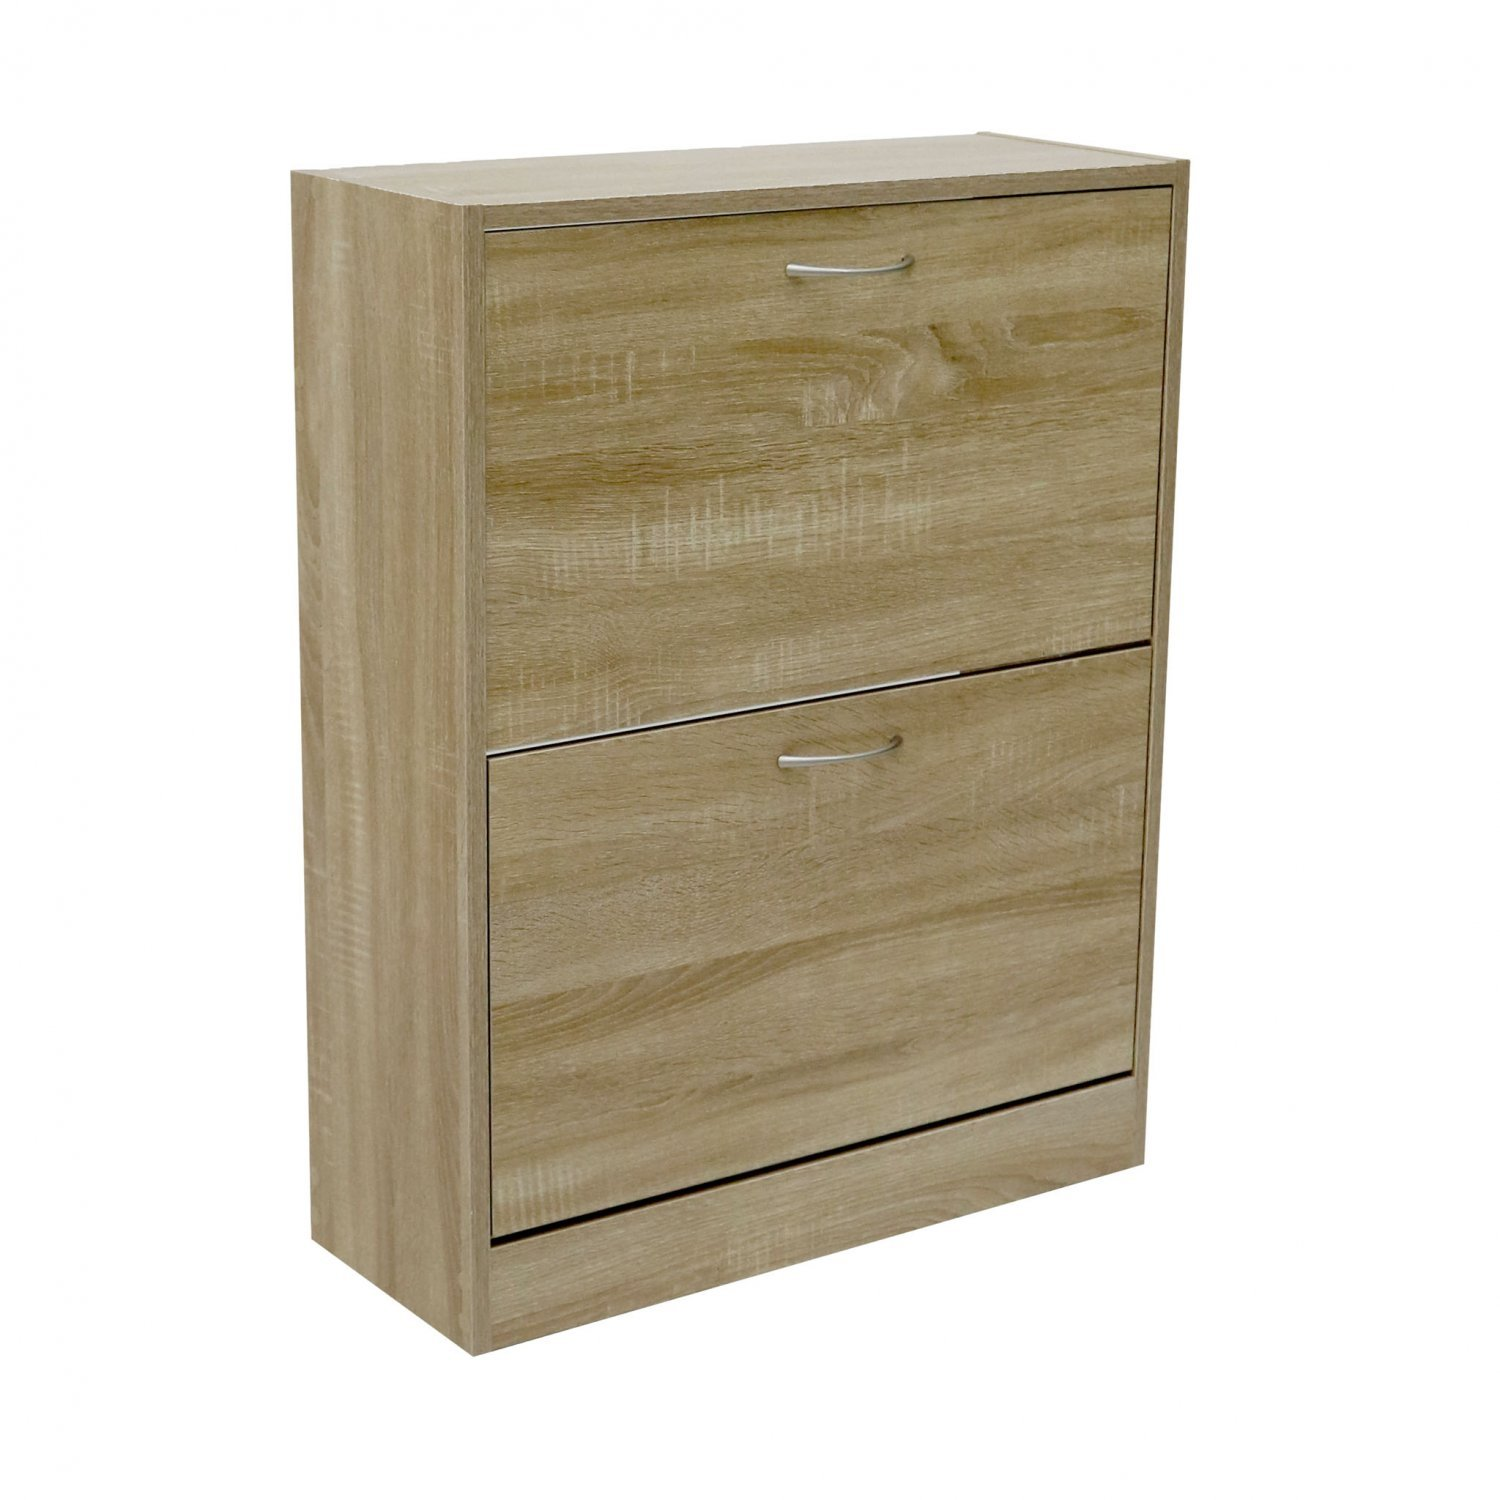 Oak Effect Kitchen Cabinets: 2 Drawer Oak Effect Shoe Storage Cupboard Cabinet